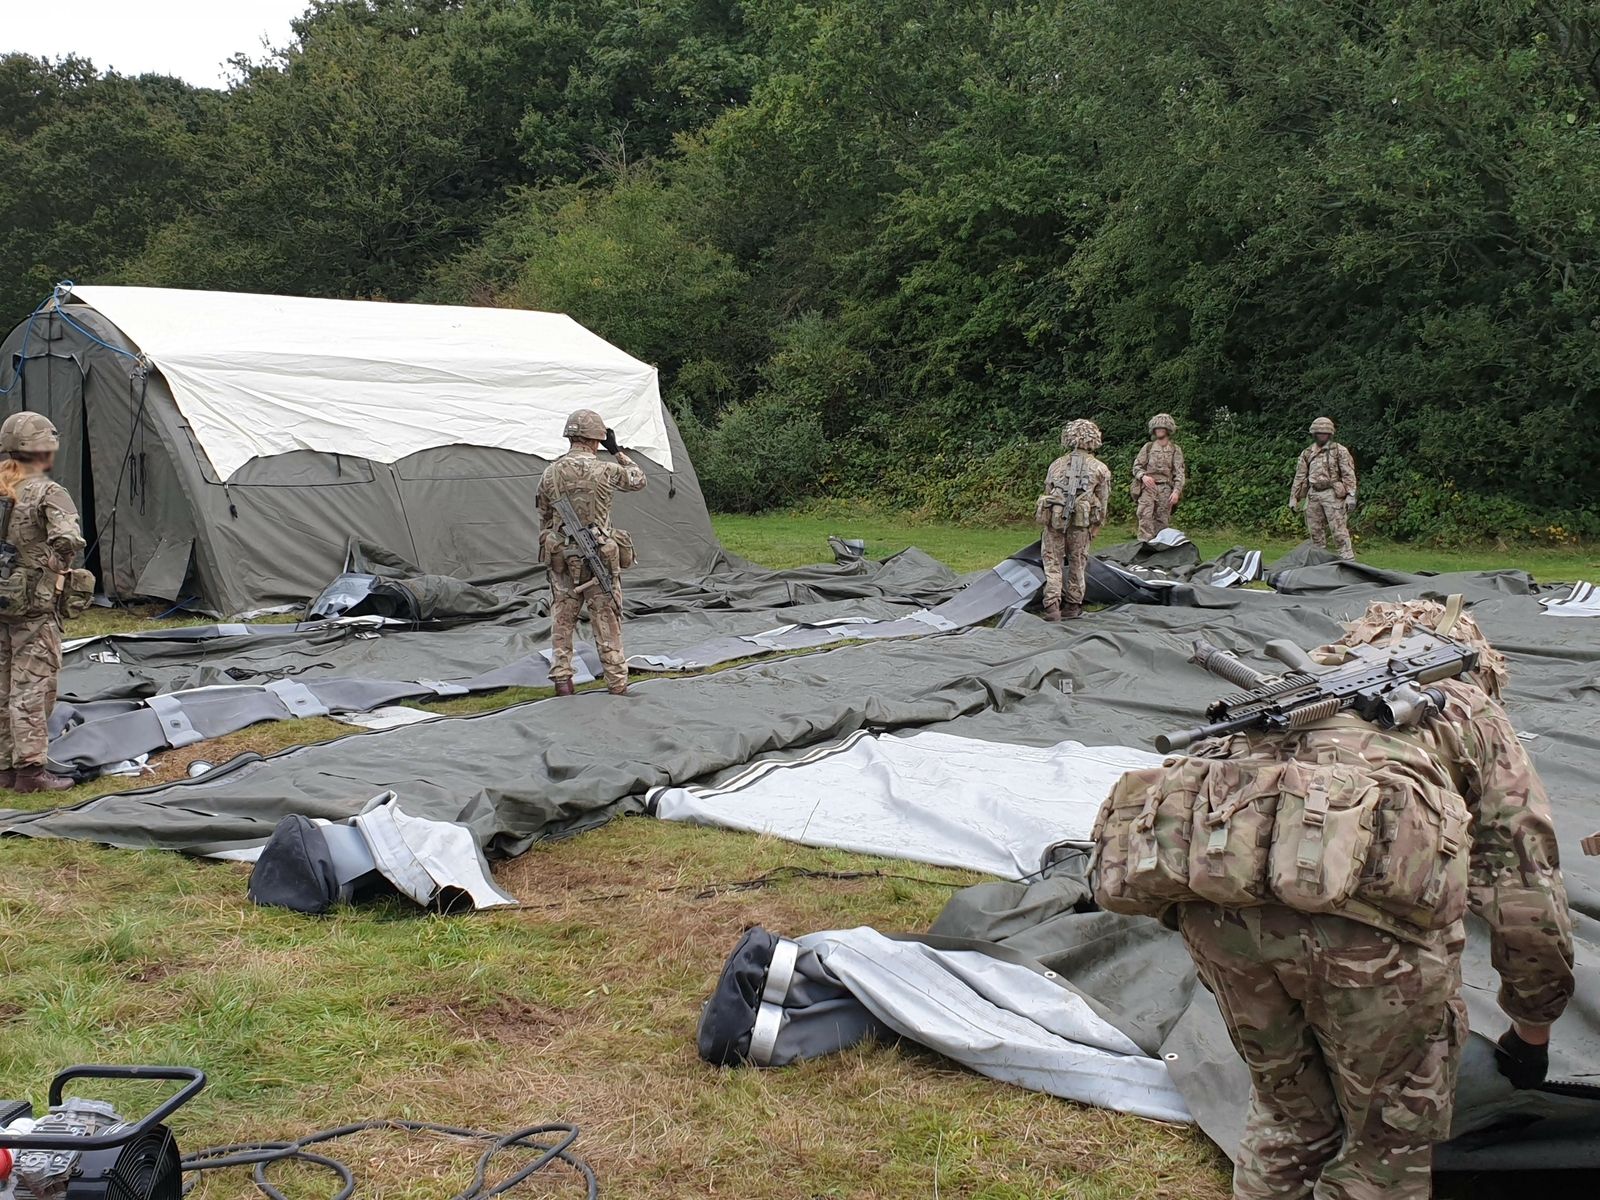 NIXUS PRO Rapid deployment military tents on manoeuvres with British Army